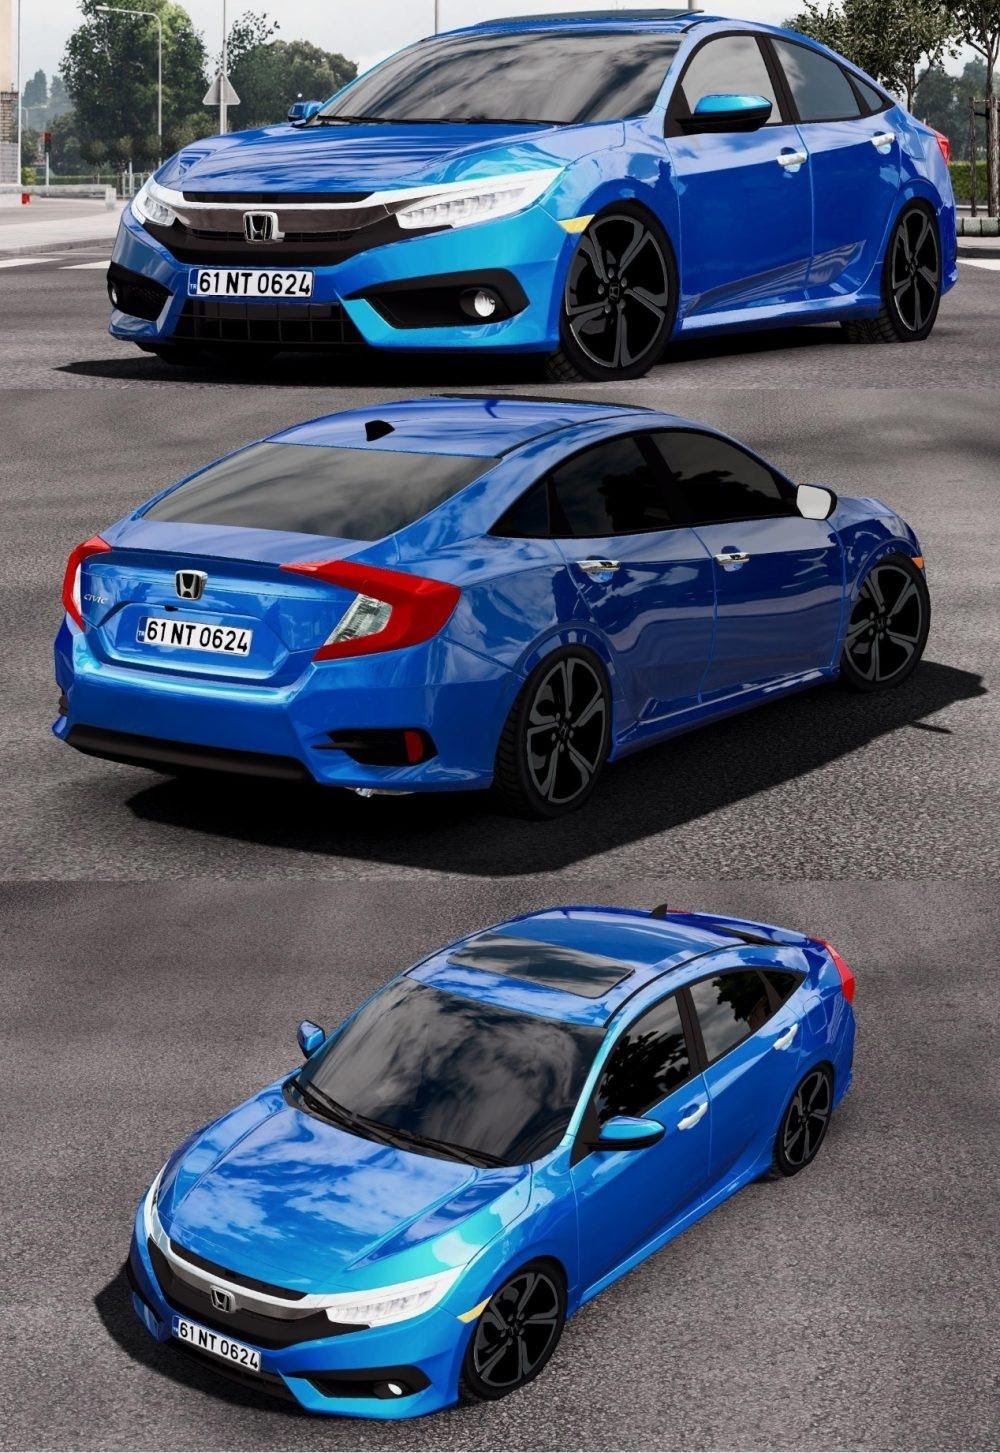 Honda Civic Modifications : honda, civic, modifications, Honda, Civic:, Civic